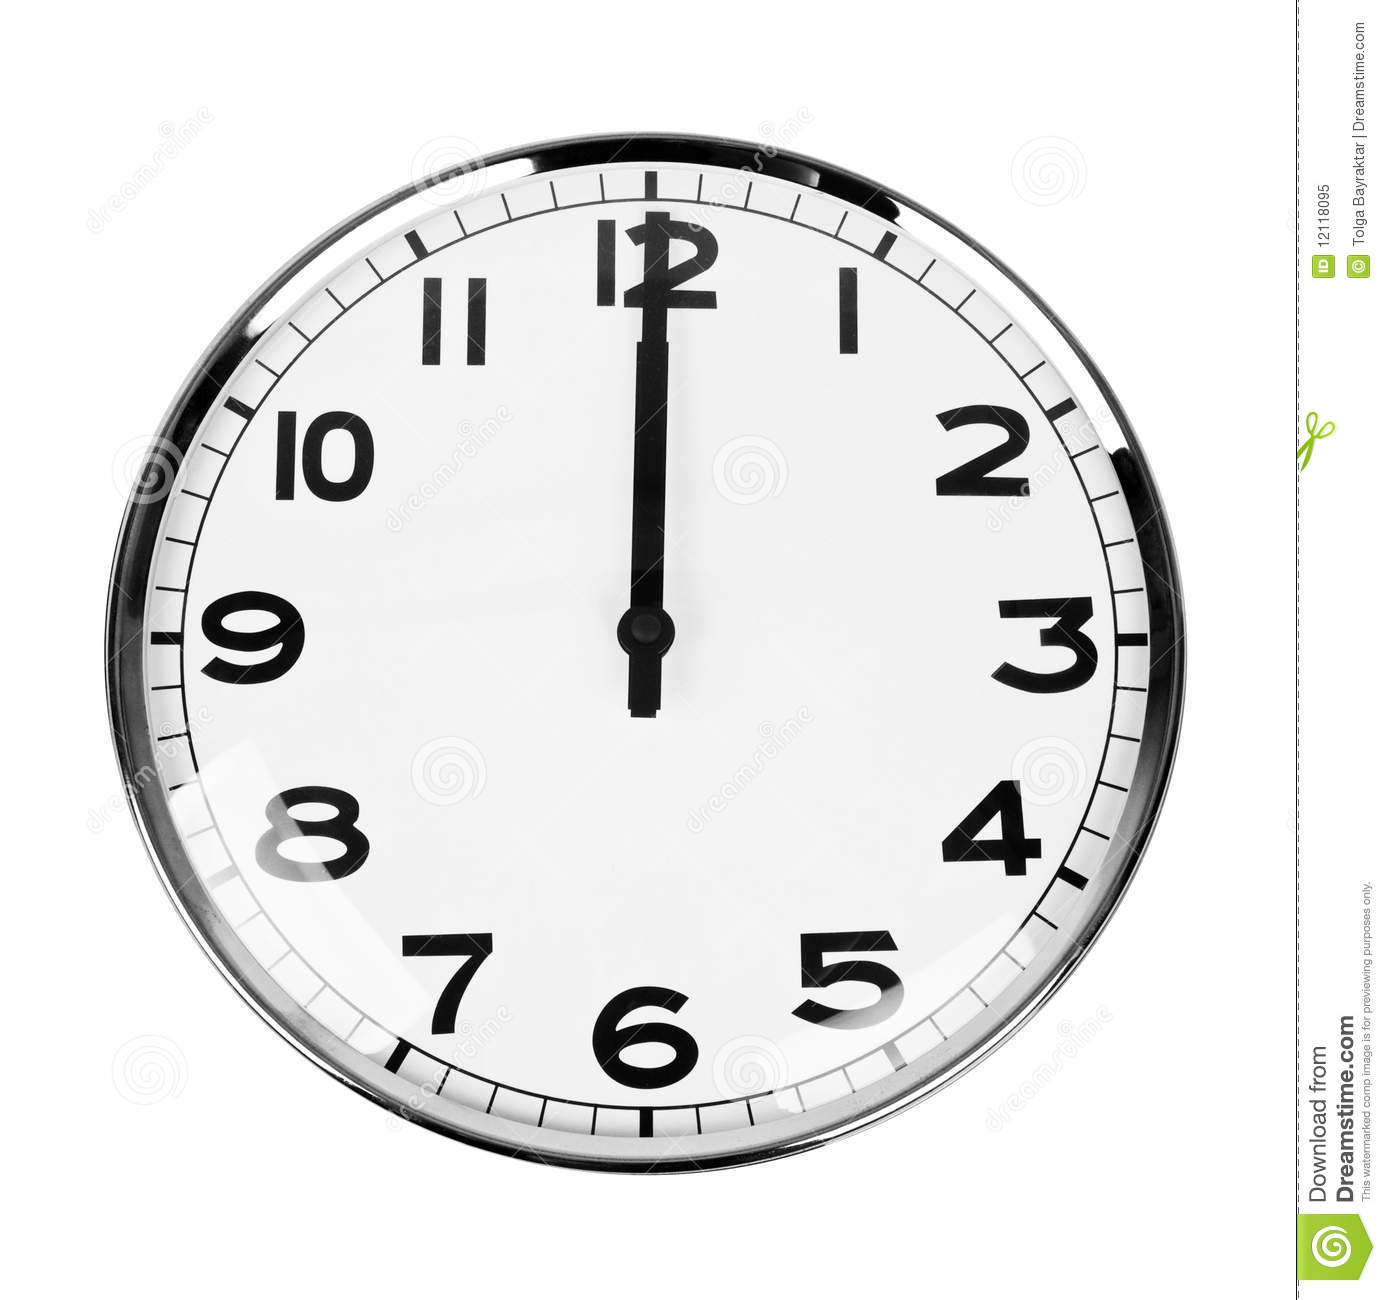 Clock Sign 12 O'Clock Royalty Free Stock Photo - Image: 12118095